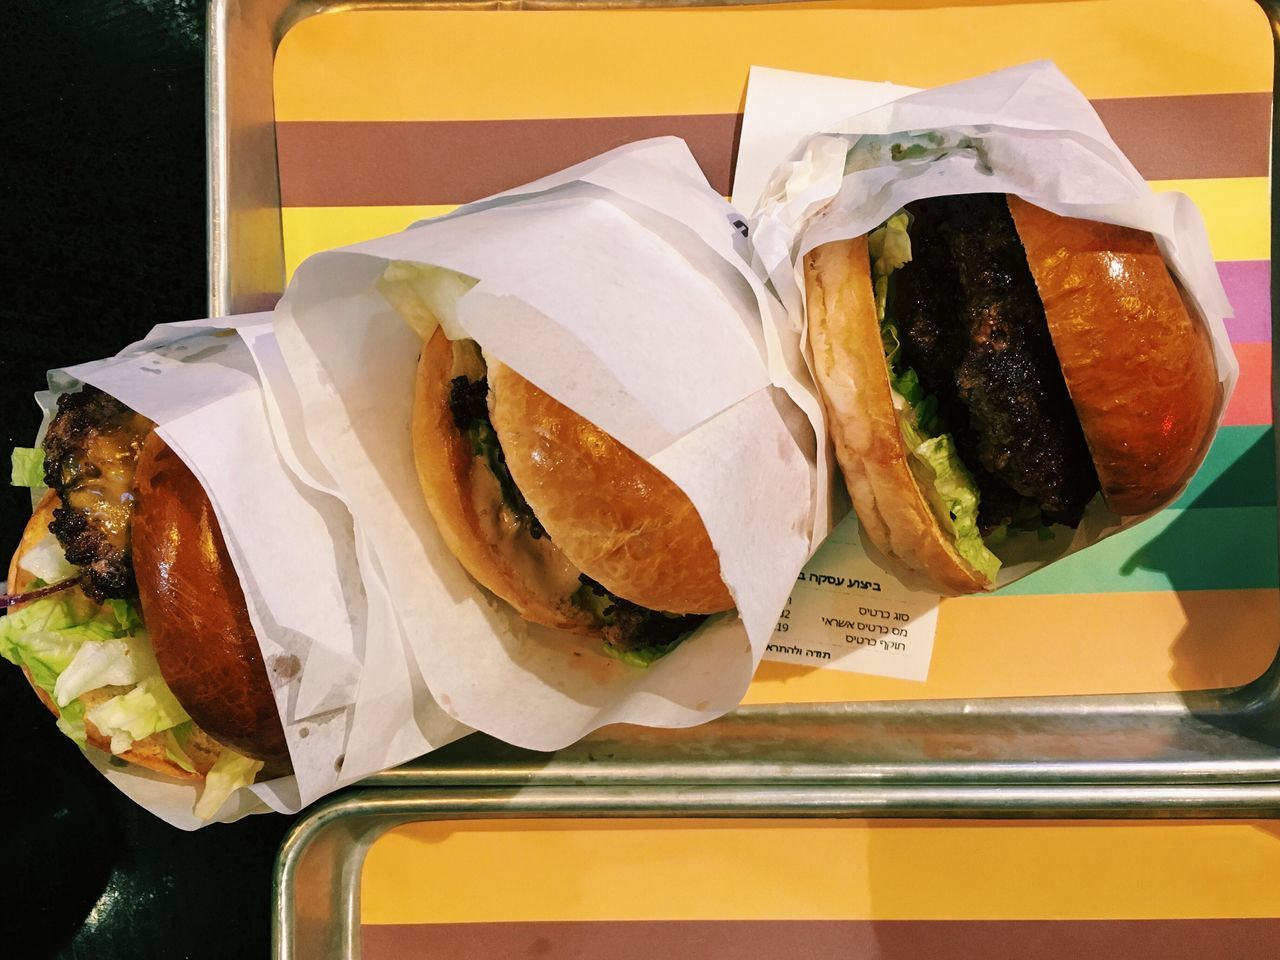 High Angle View Of Burgers In Tray